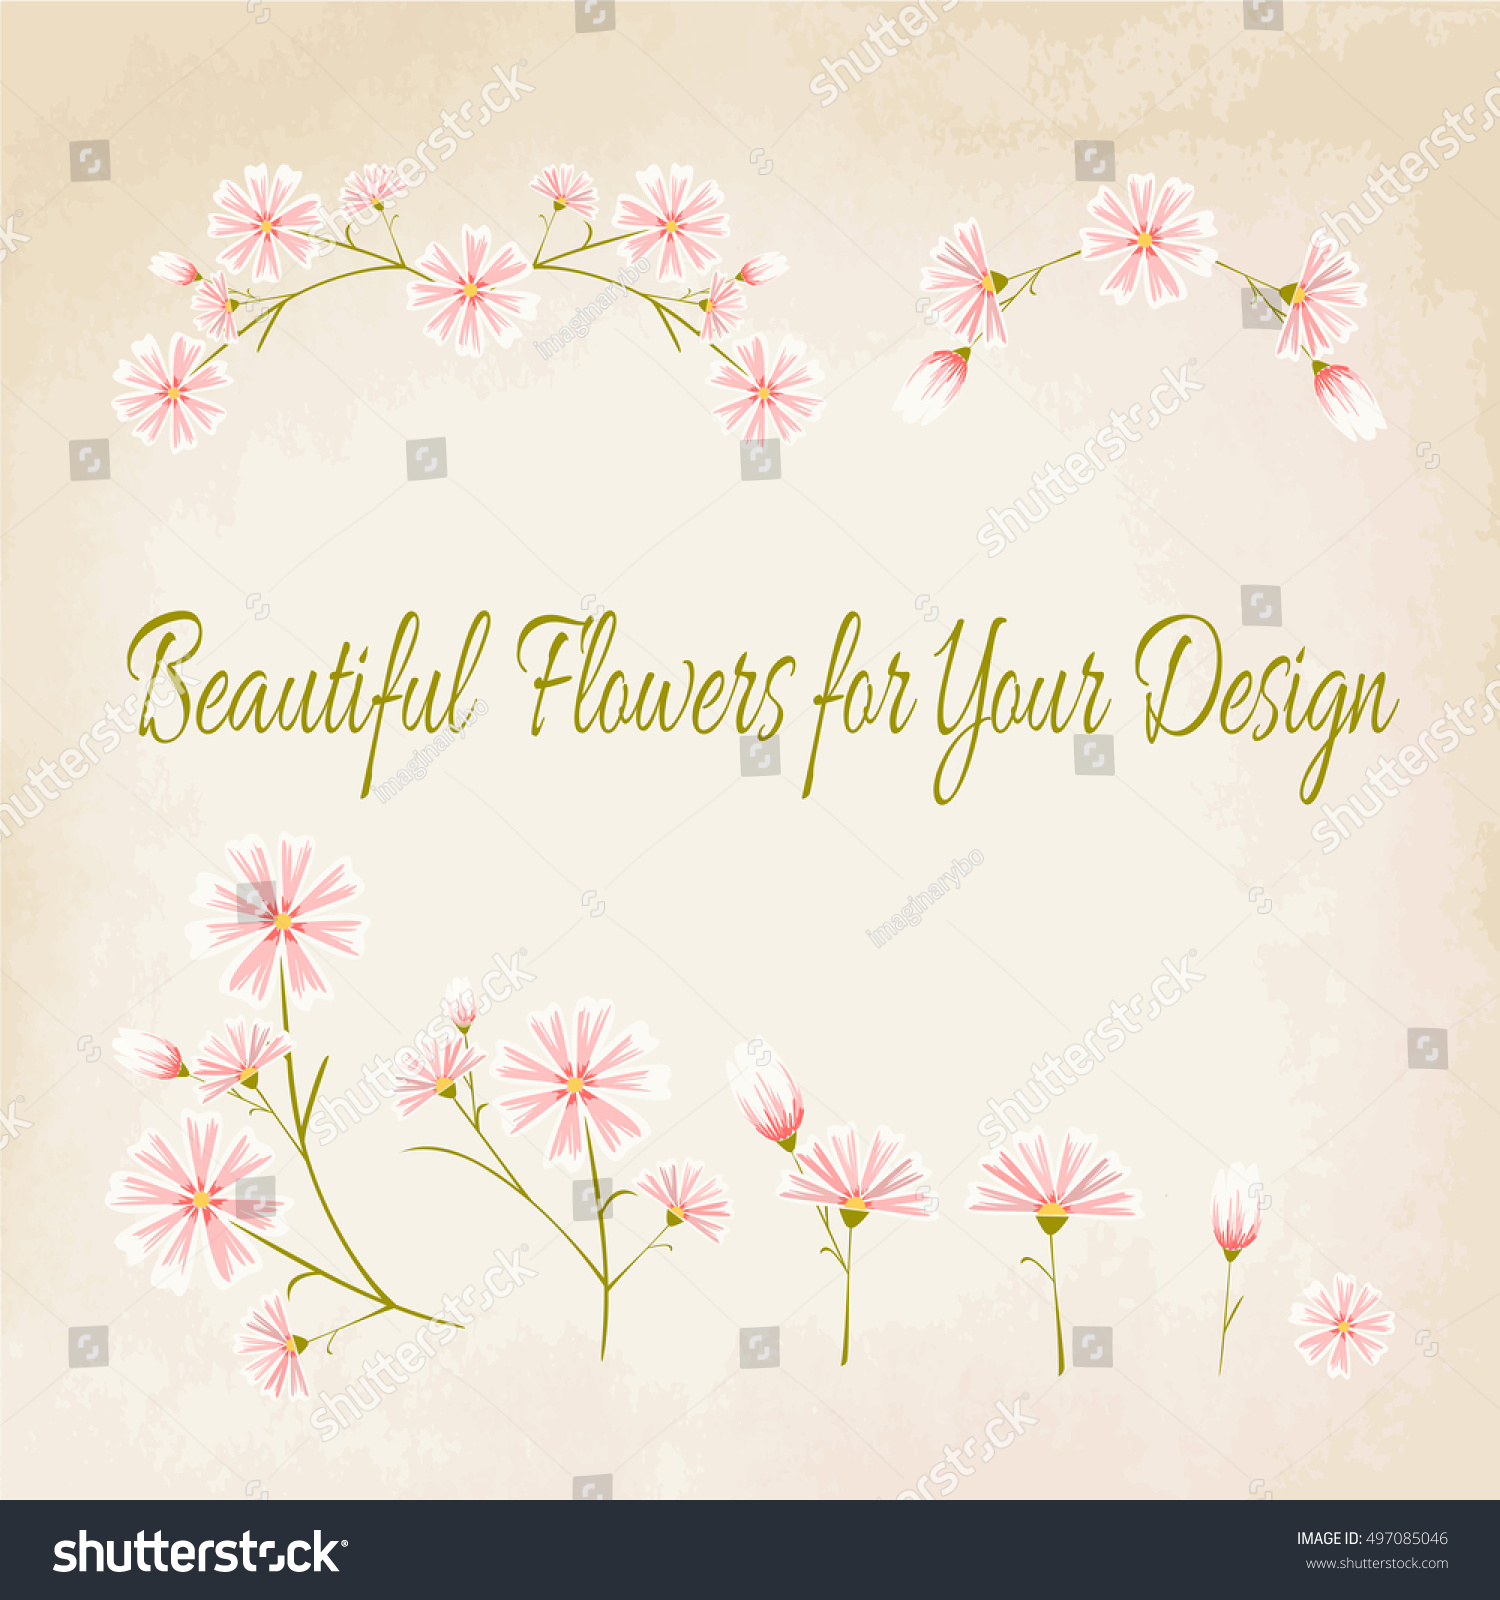 Aster daisy flowers set pink floral stock vector 497085046 aster daisy flowers set of pink floral parts and elements isolated on vintage beige background izmirmasajfo